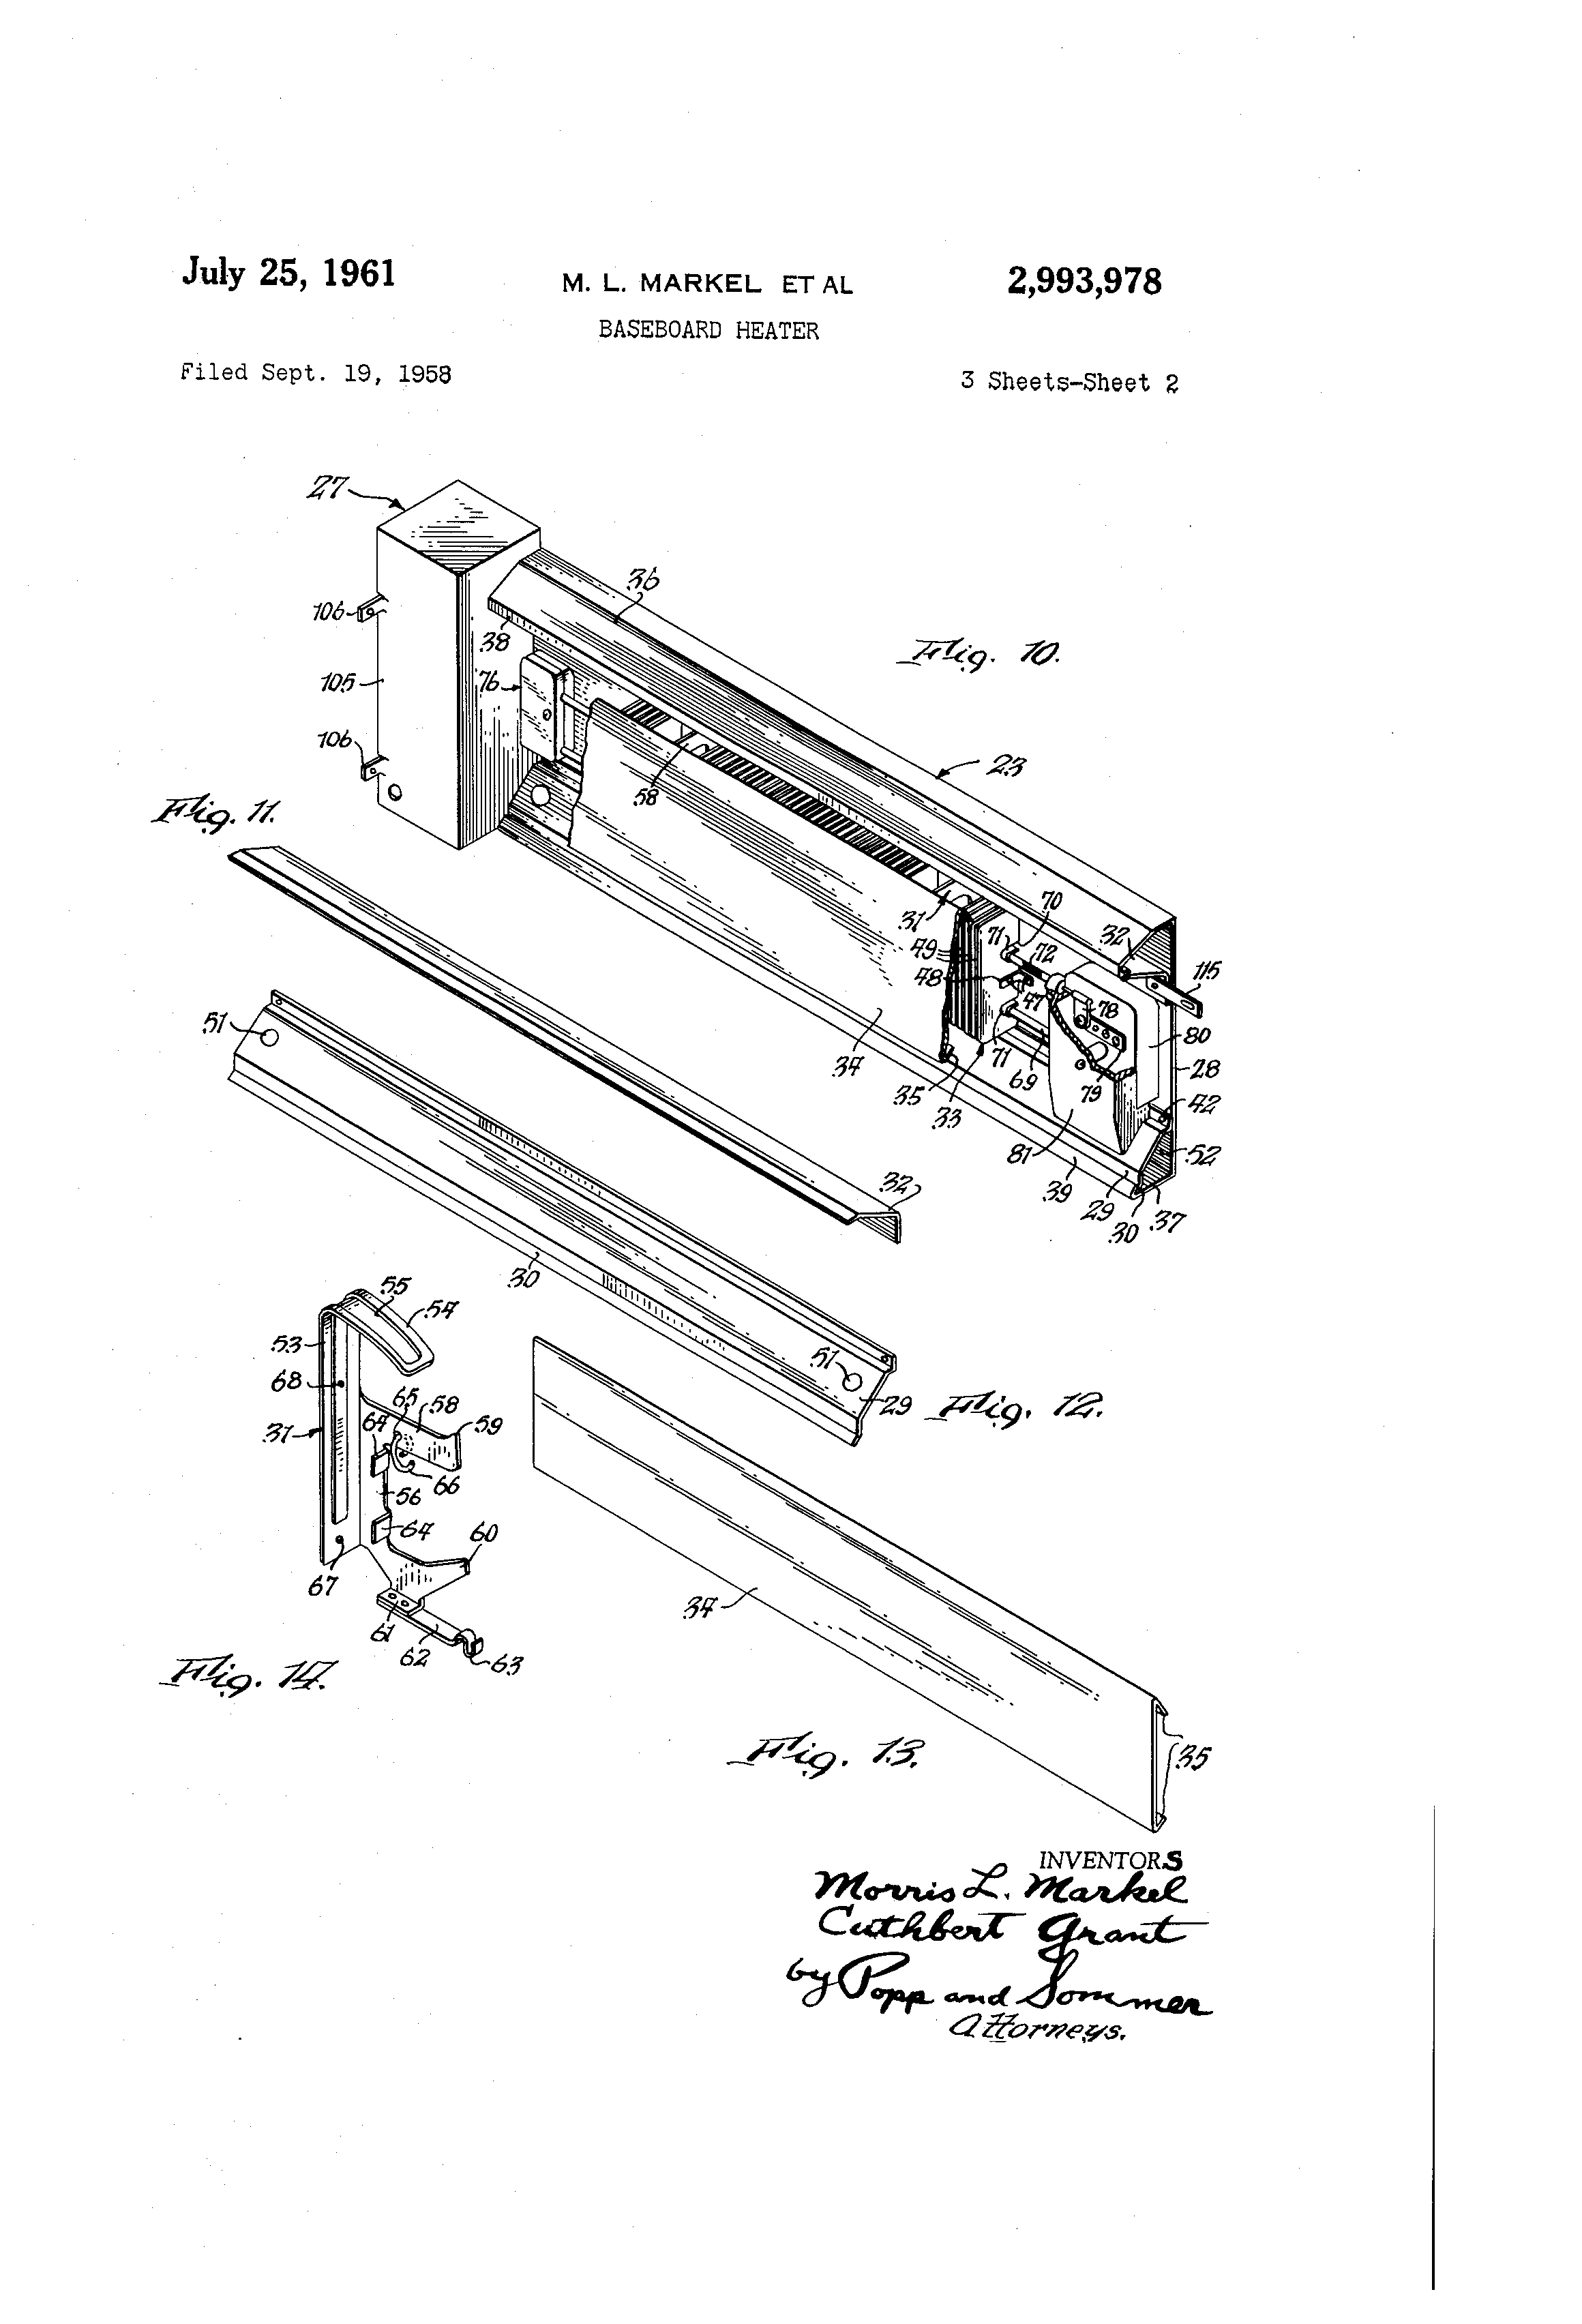 cadet baseboard heater wiring diagram of simple house patent us2993978 google patents